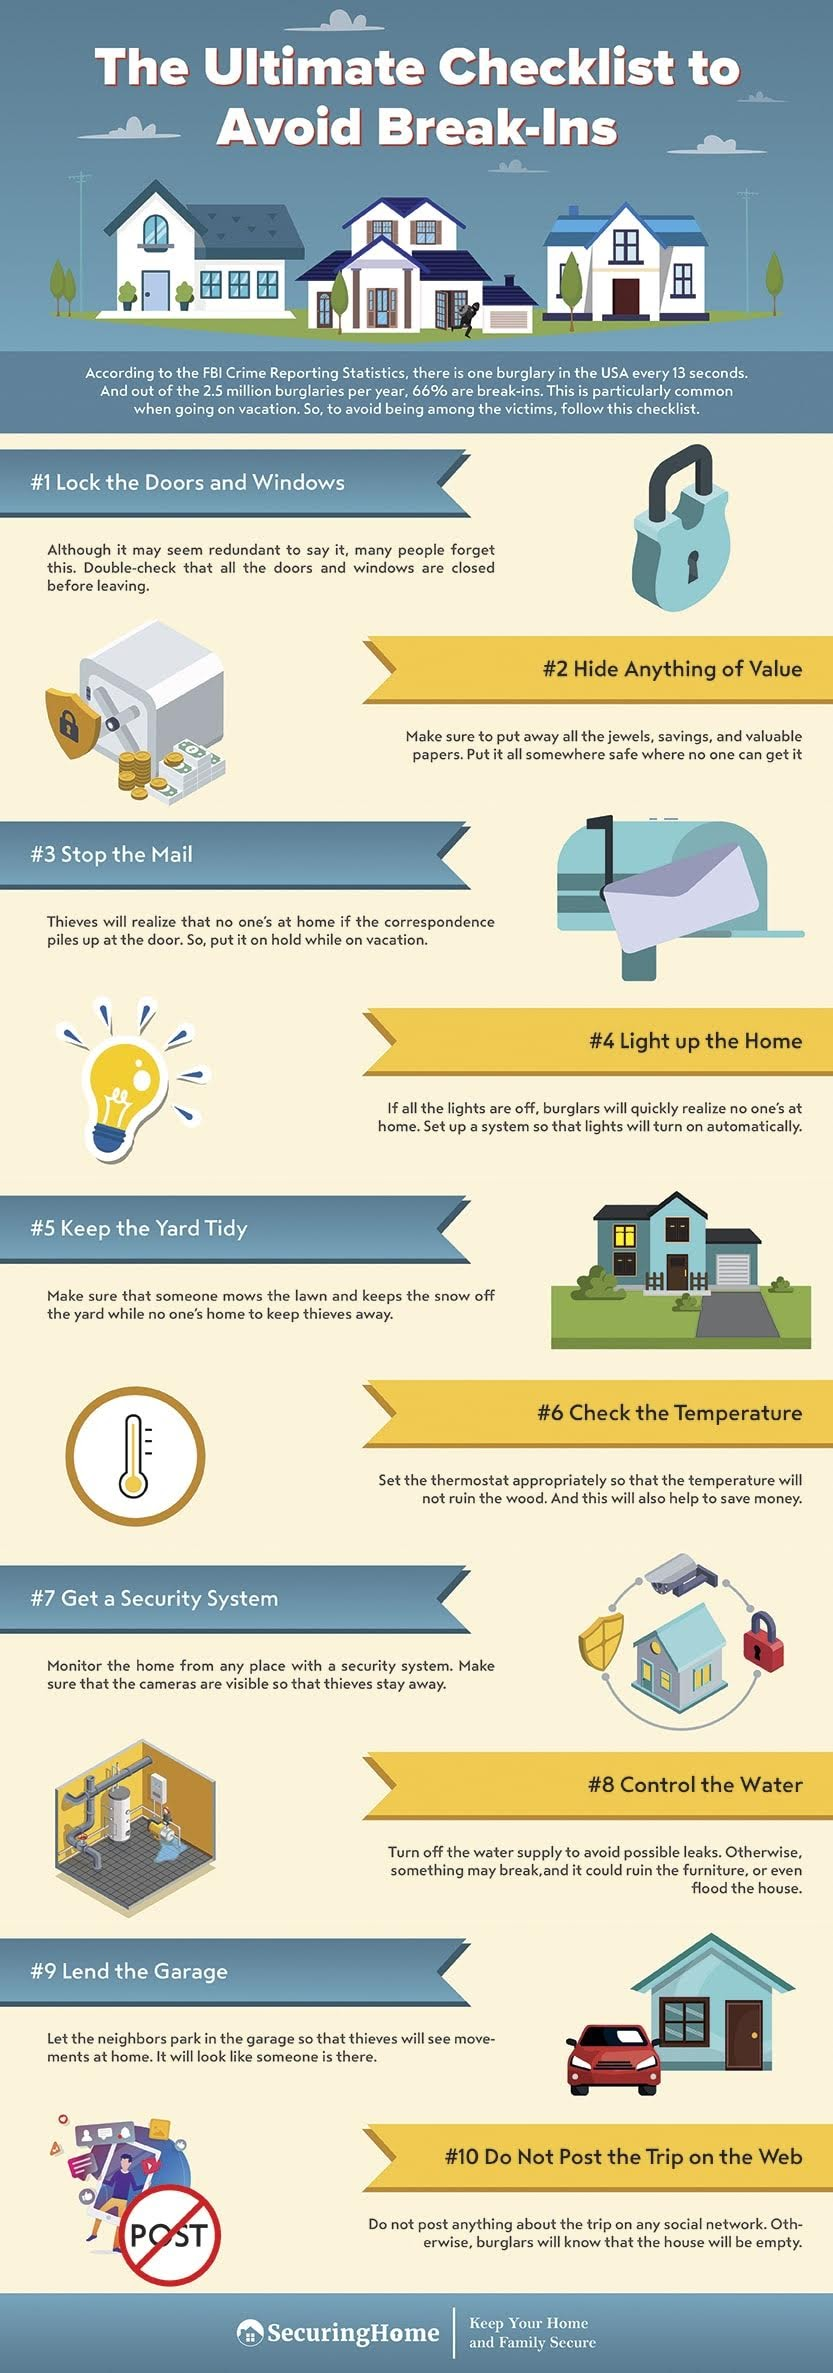 The Ultimate Checklist to Avoid Break-Ins #infographic